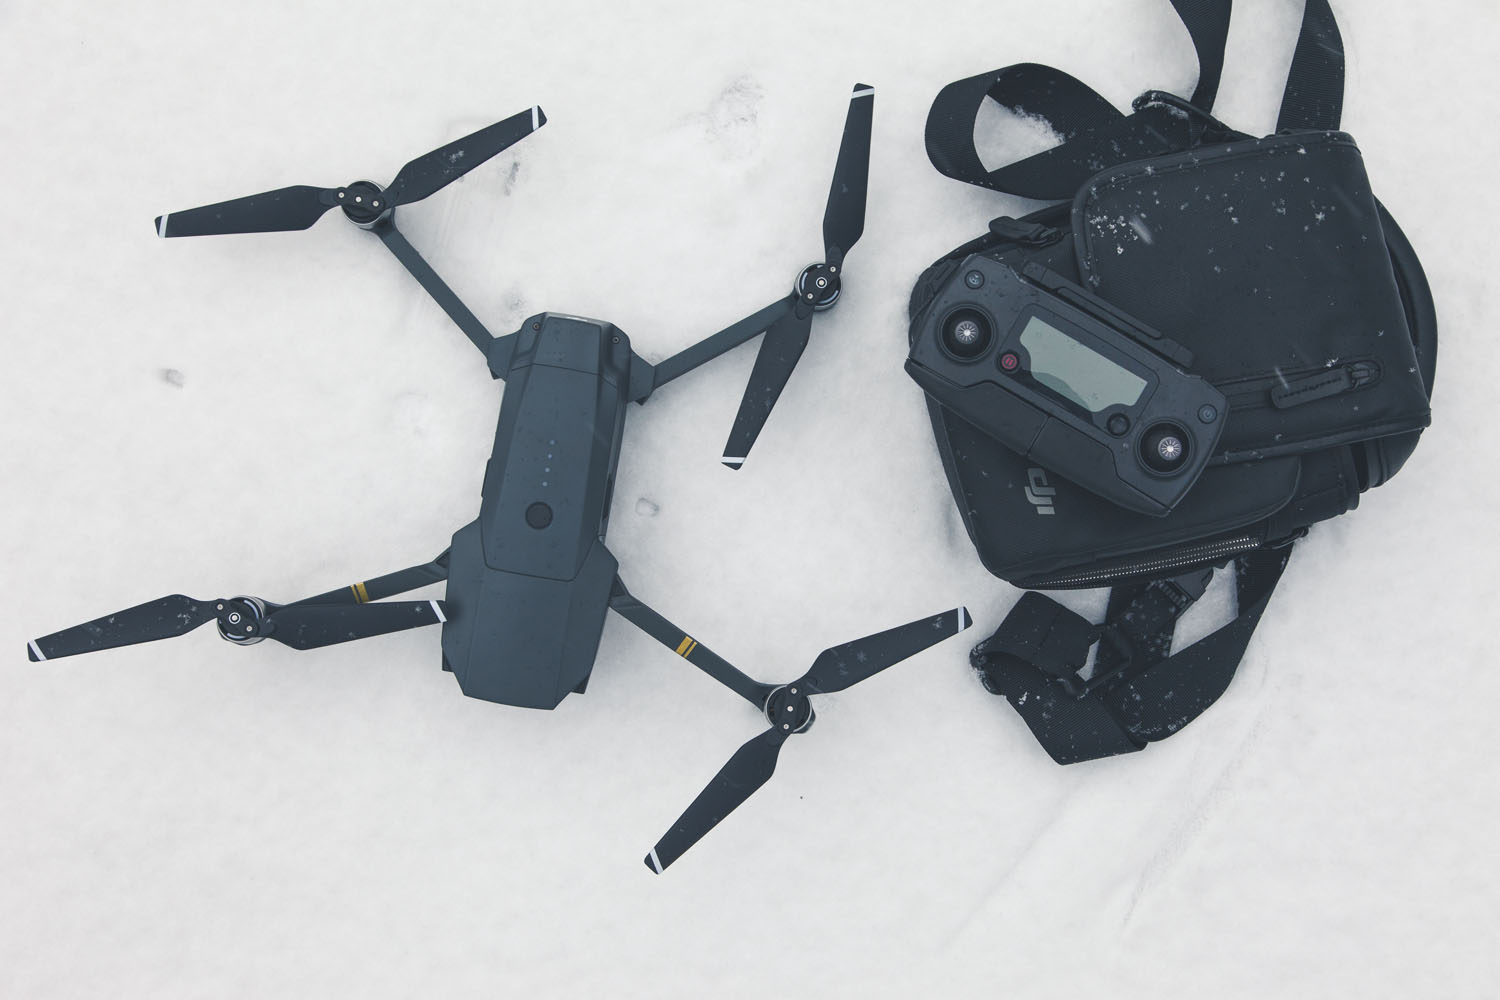 dji-mavic-air-droon-vaiklad-photopoint_4